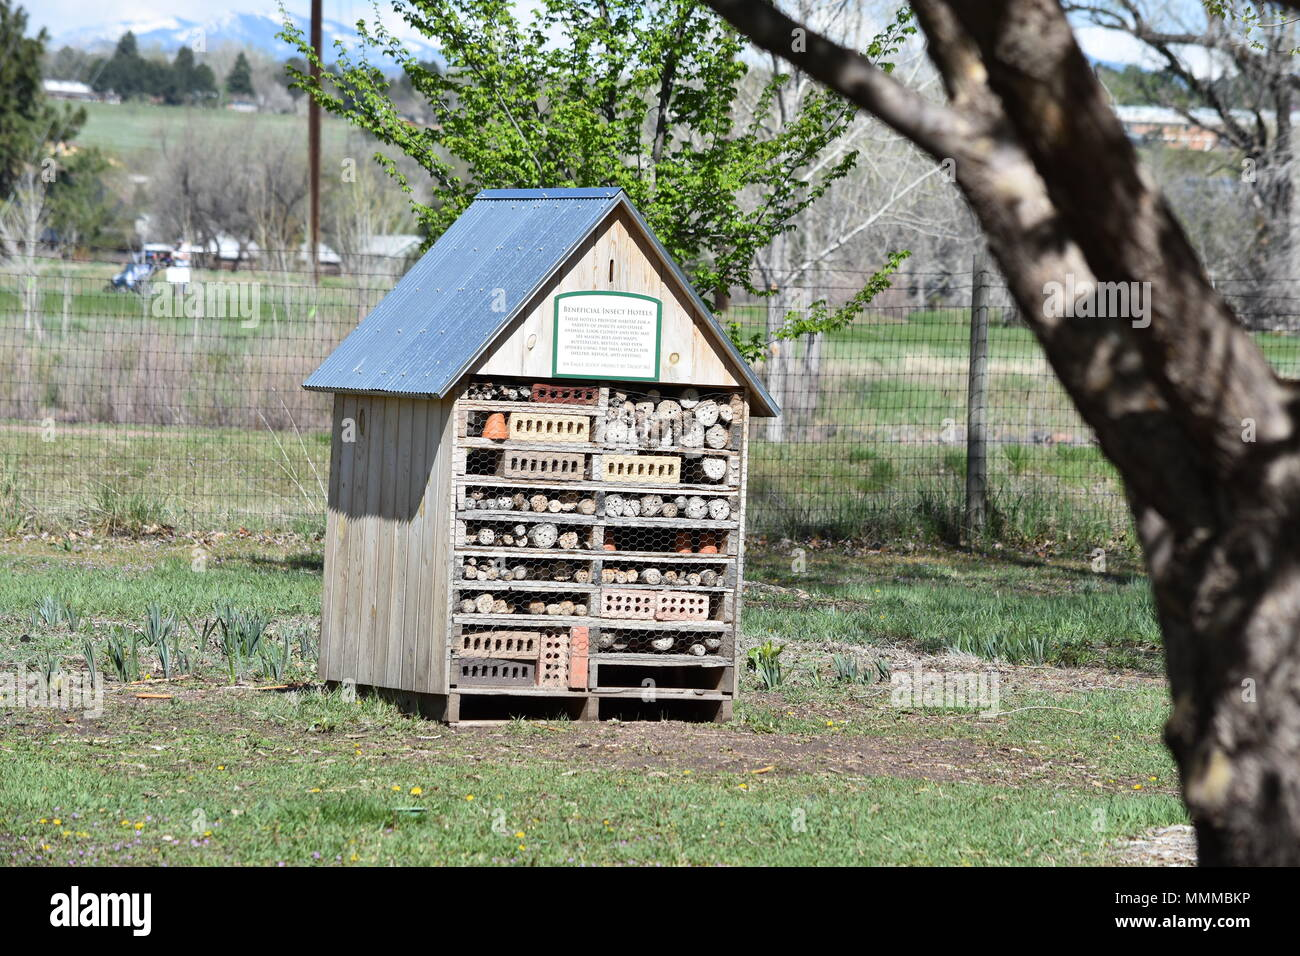 Beneficial Insect House at Hudson Gardens - Stock Image